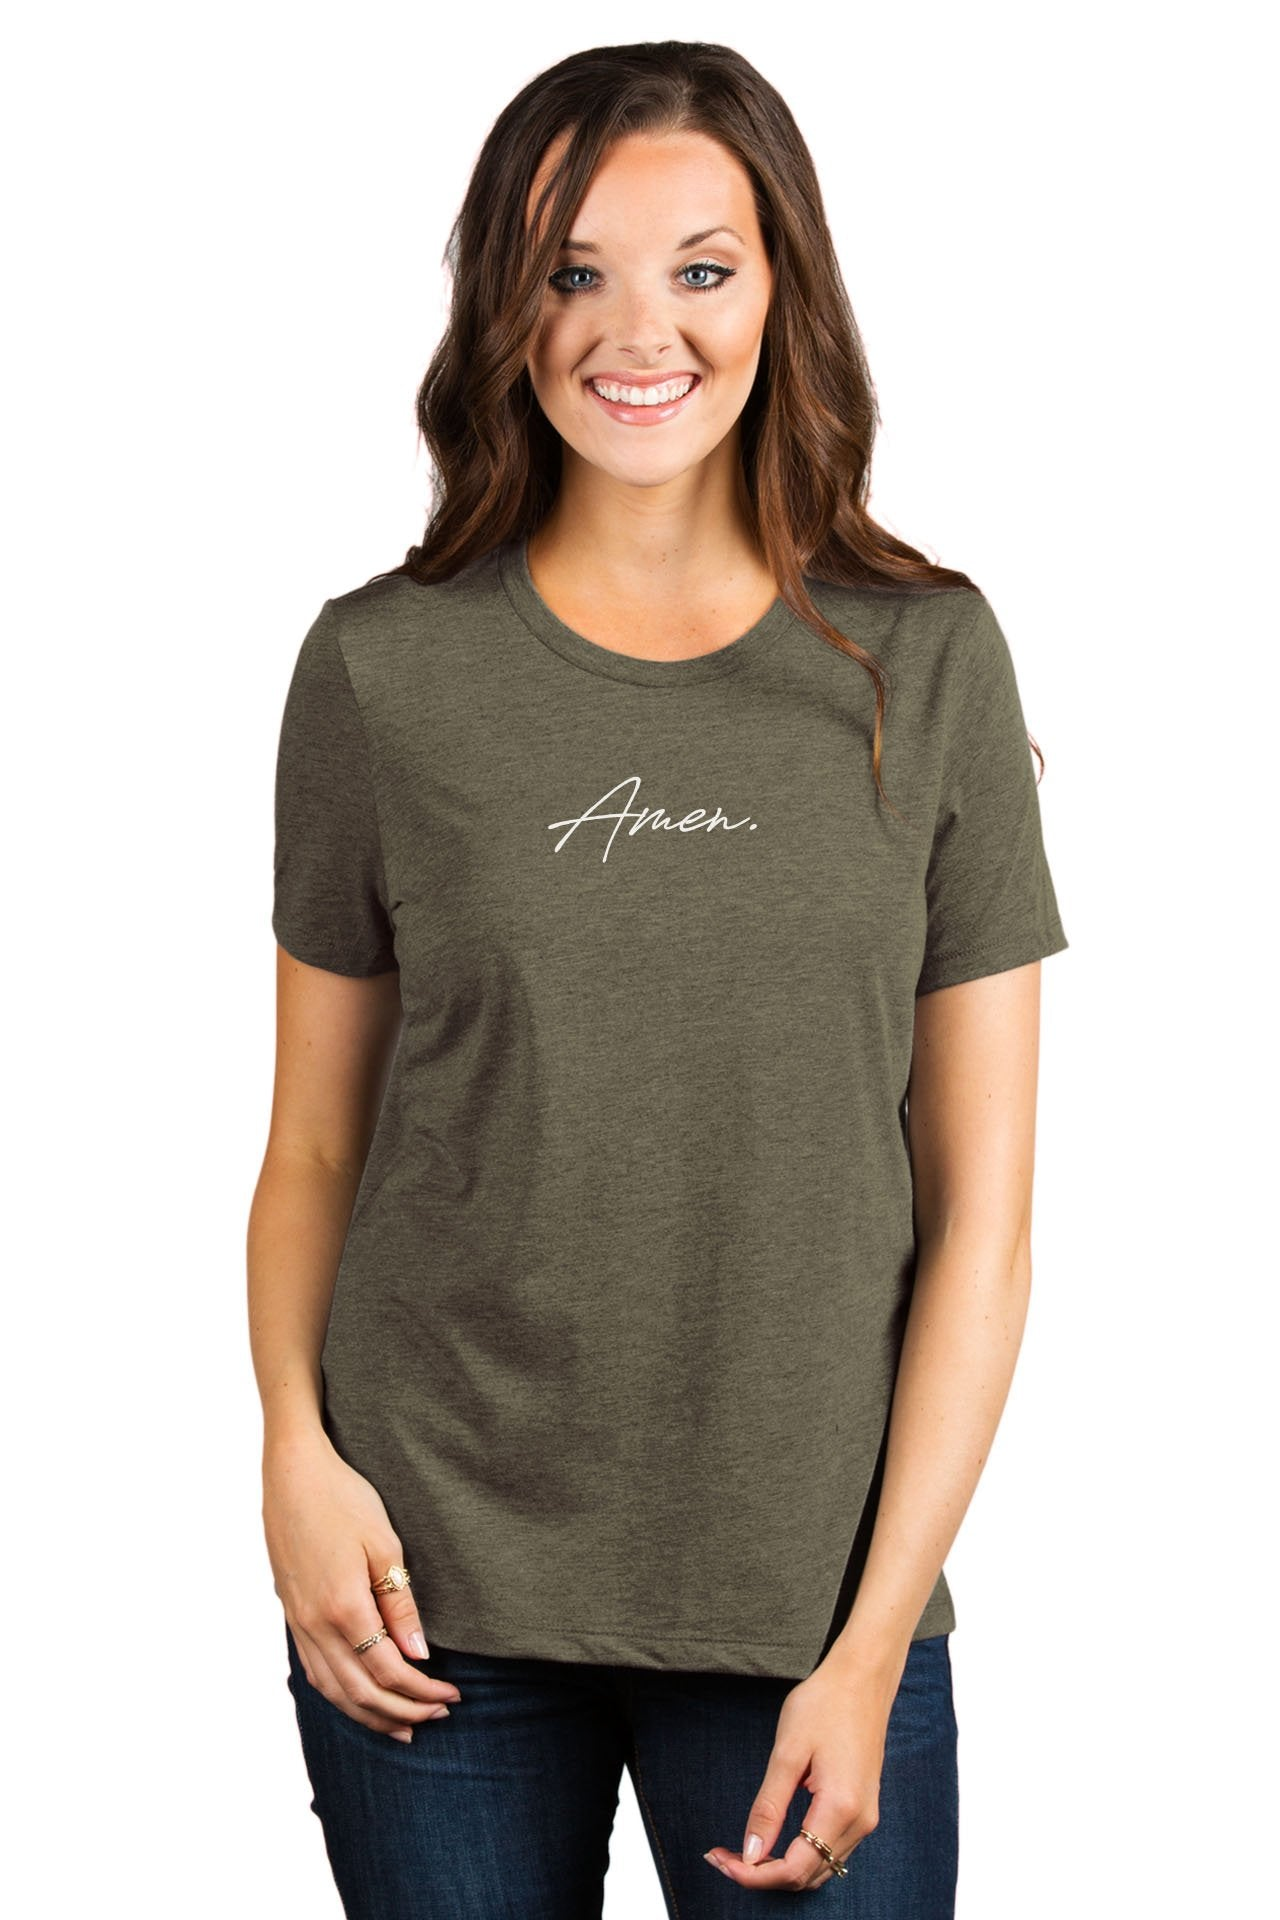 Amen - Thread Tank | Stories You Can Wear | T-Shirts, Tank Tops and Sweatshirts